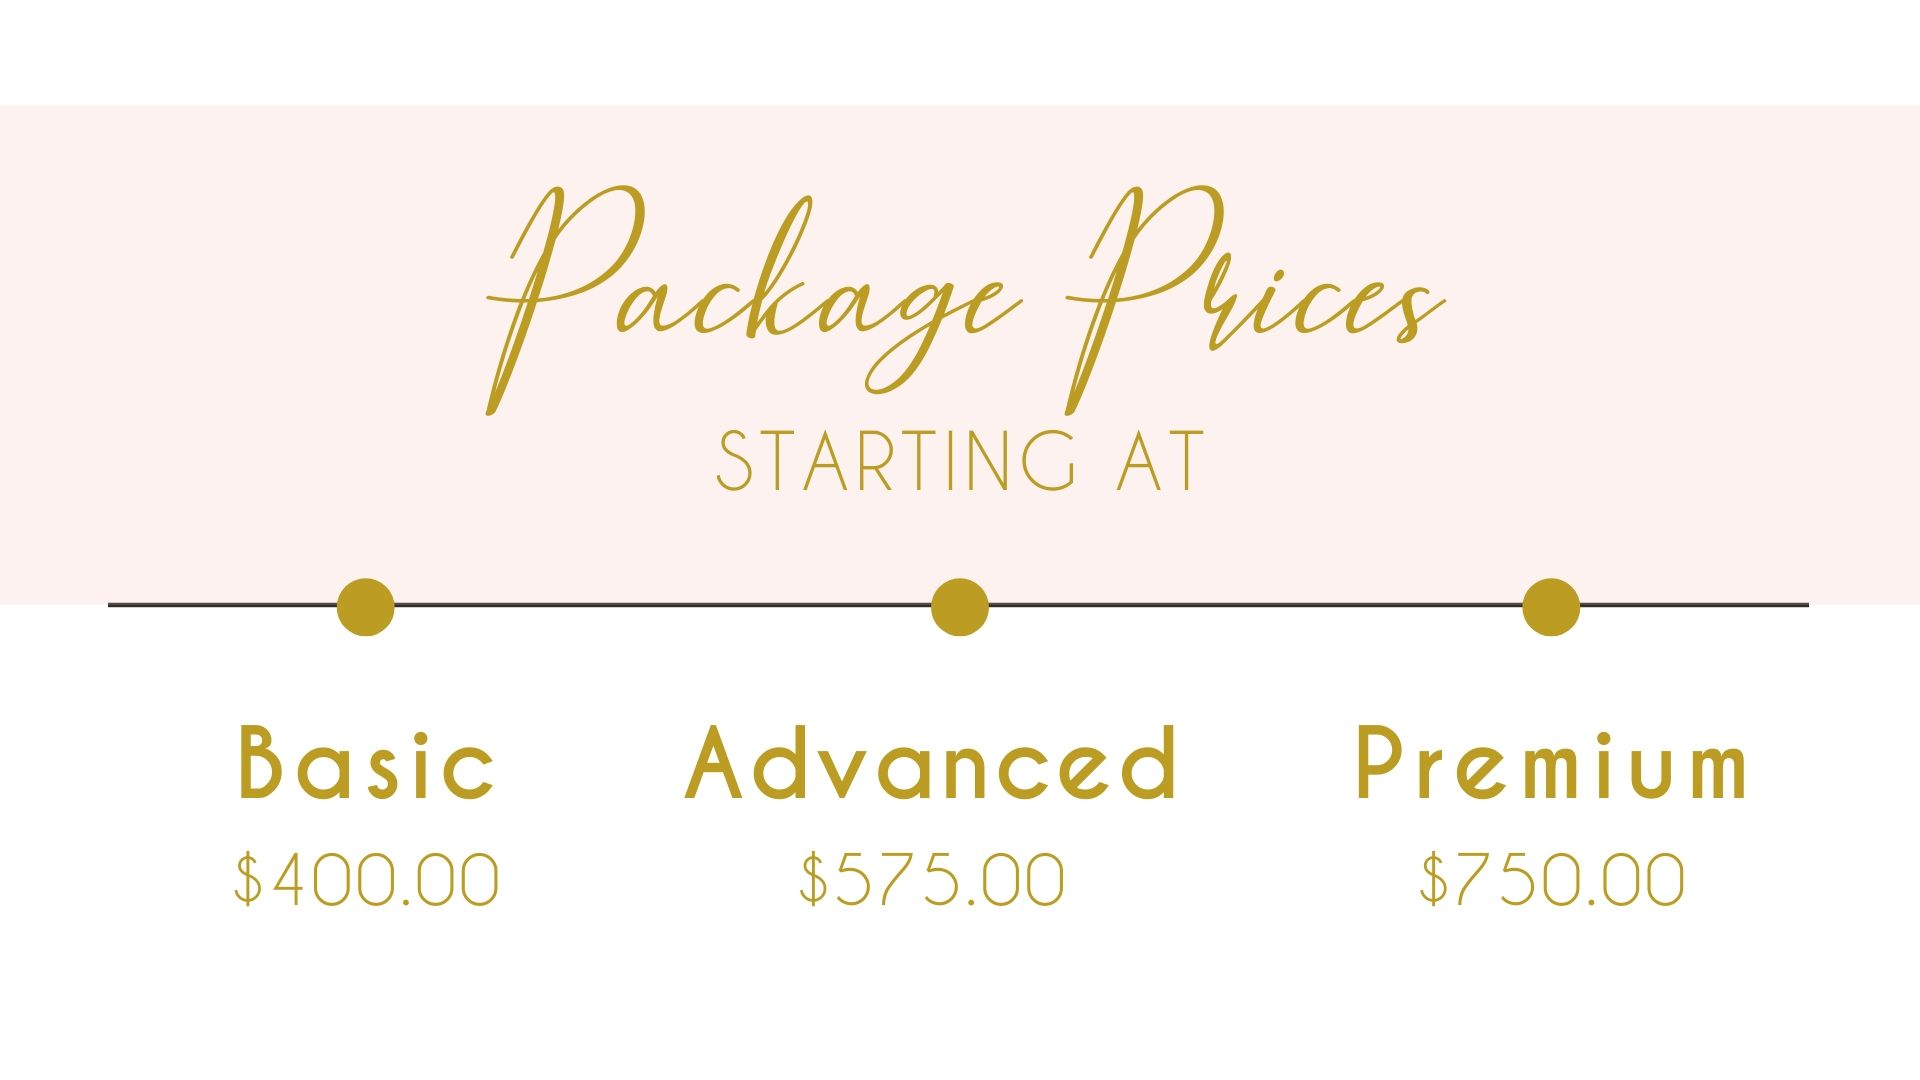 My package prices slide 2